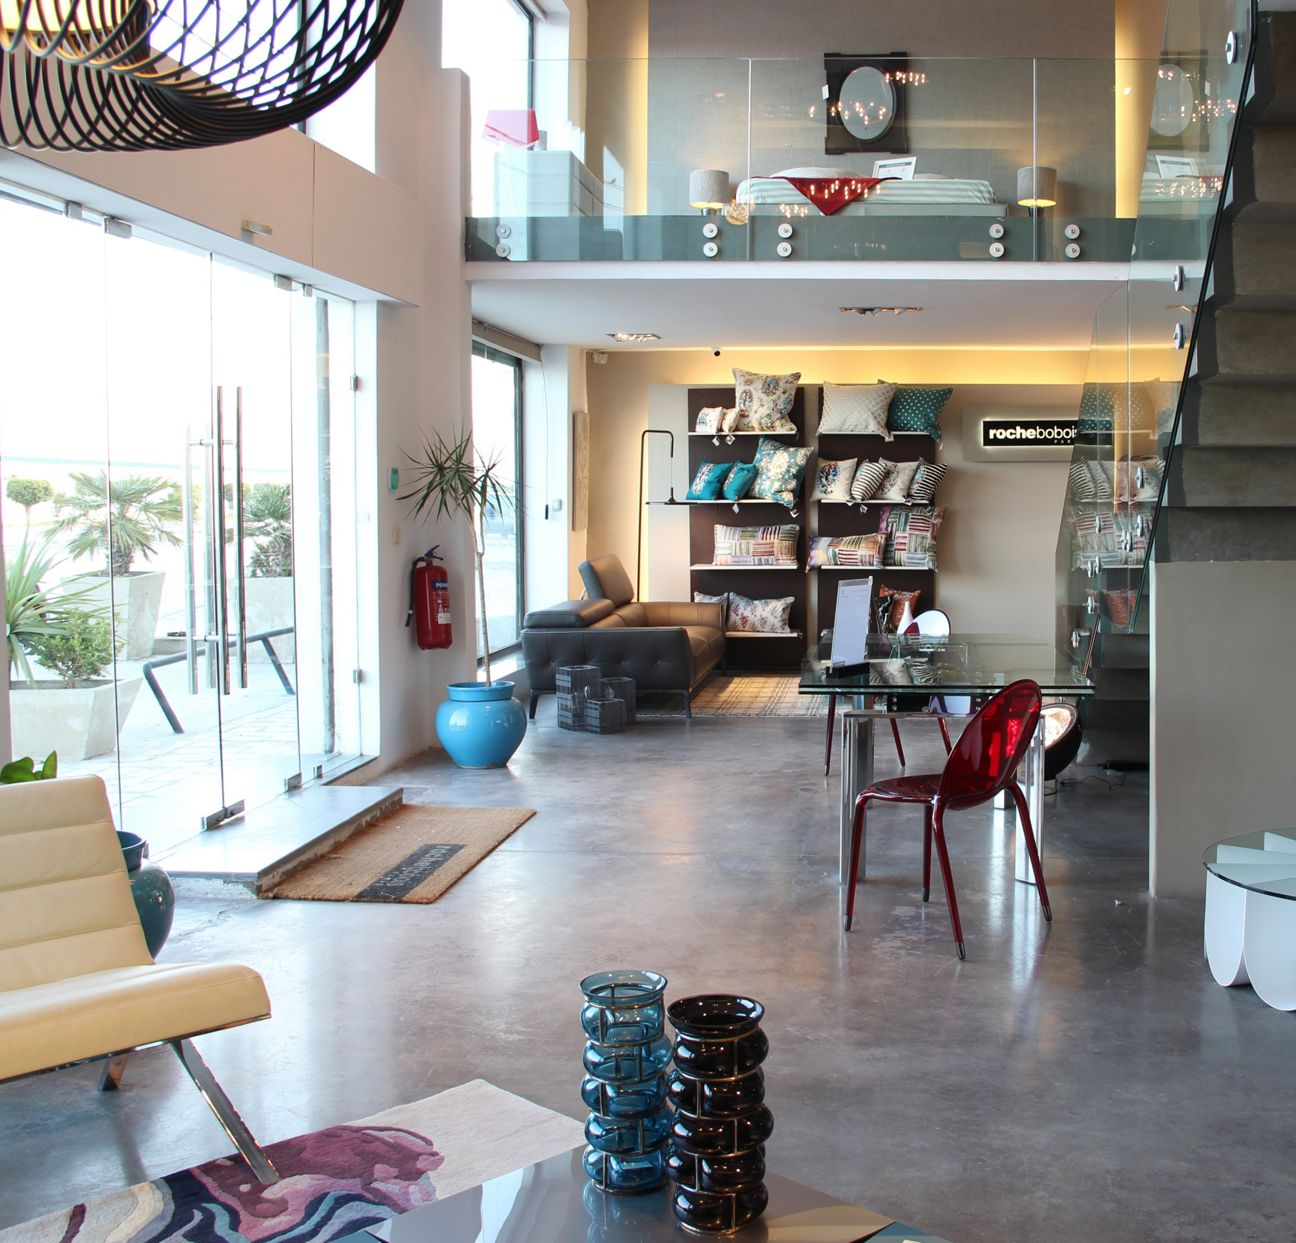 Roche Bobois Showroom Tunis 2036